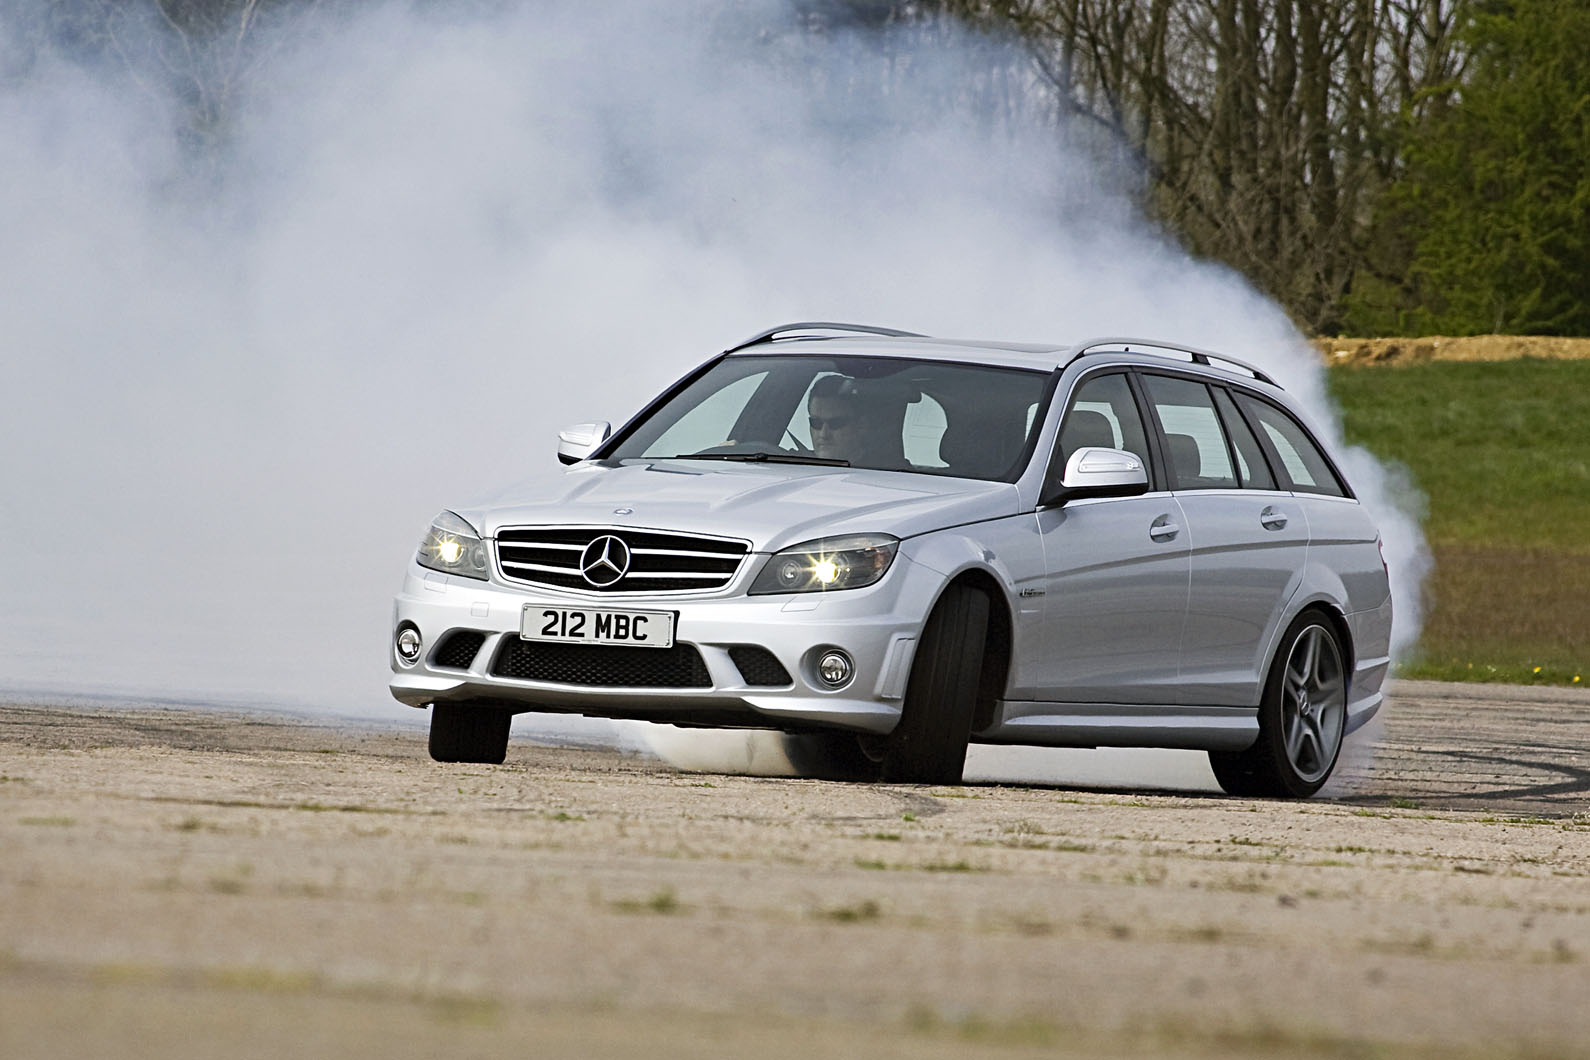 Mercedes-AMG   Used Car Buying Guide   Autocar